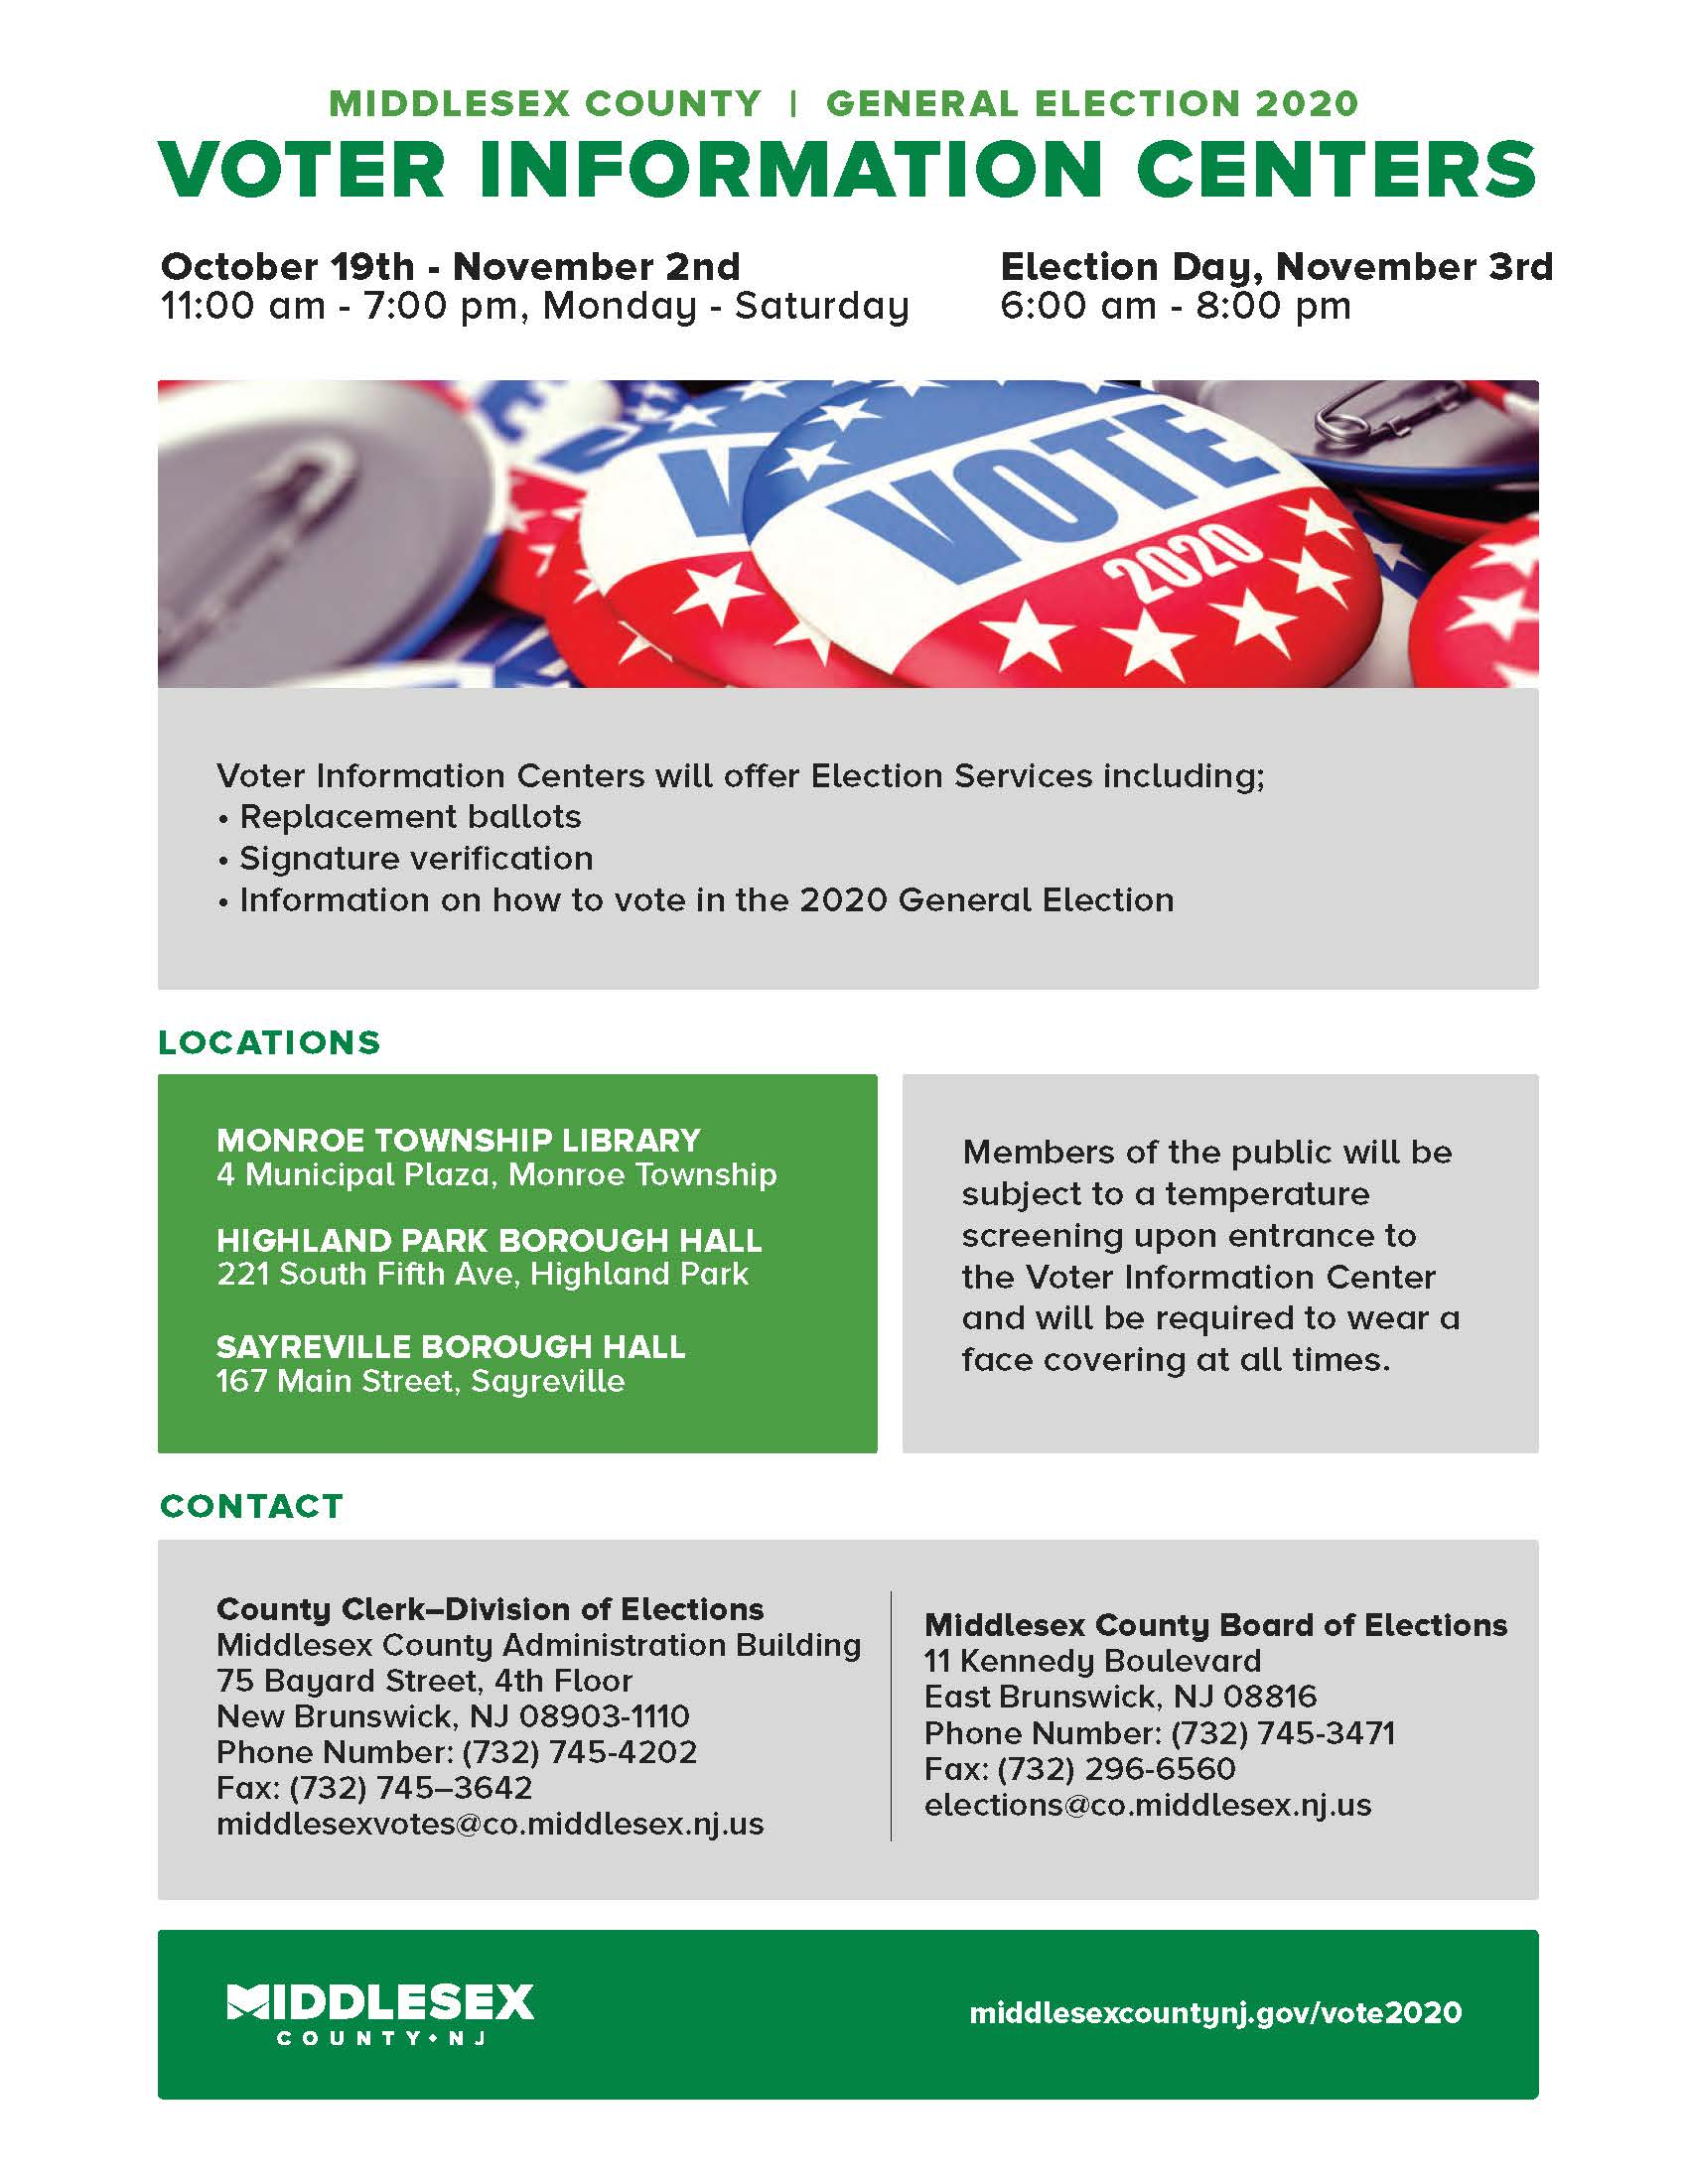 Flyer Regarding Voter Information Center